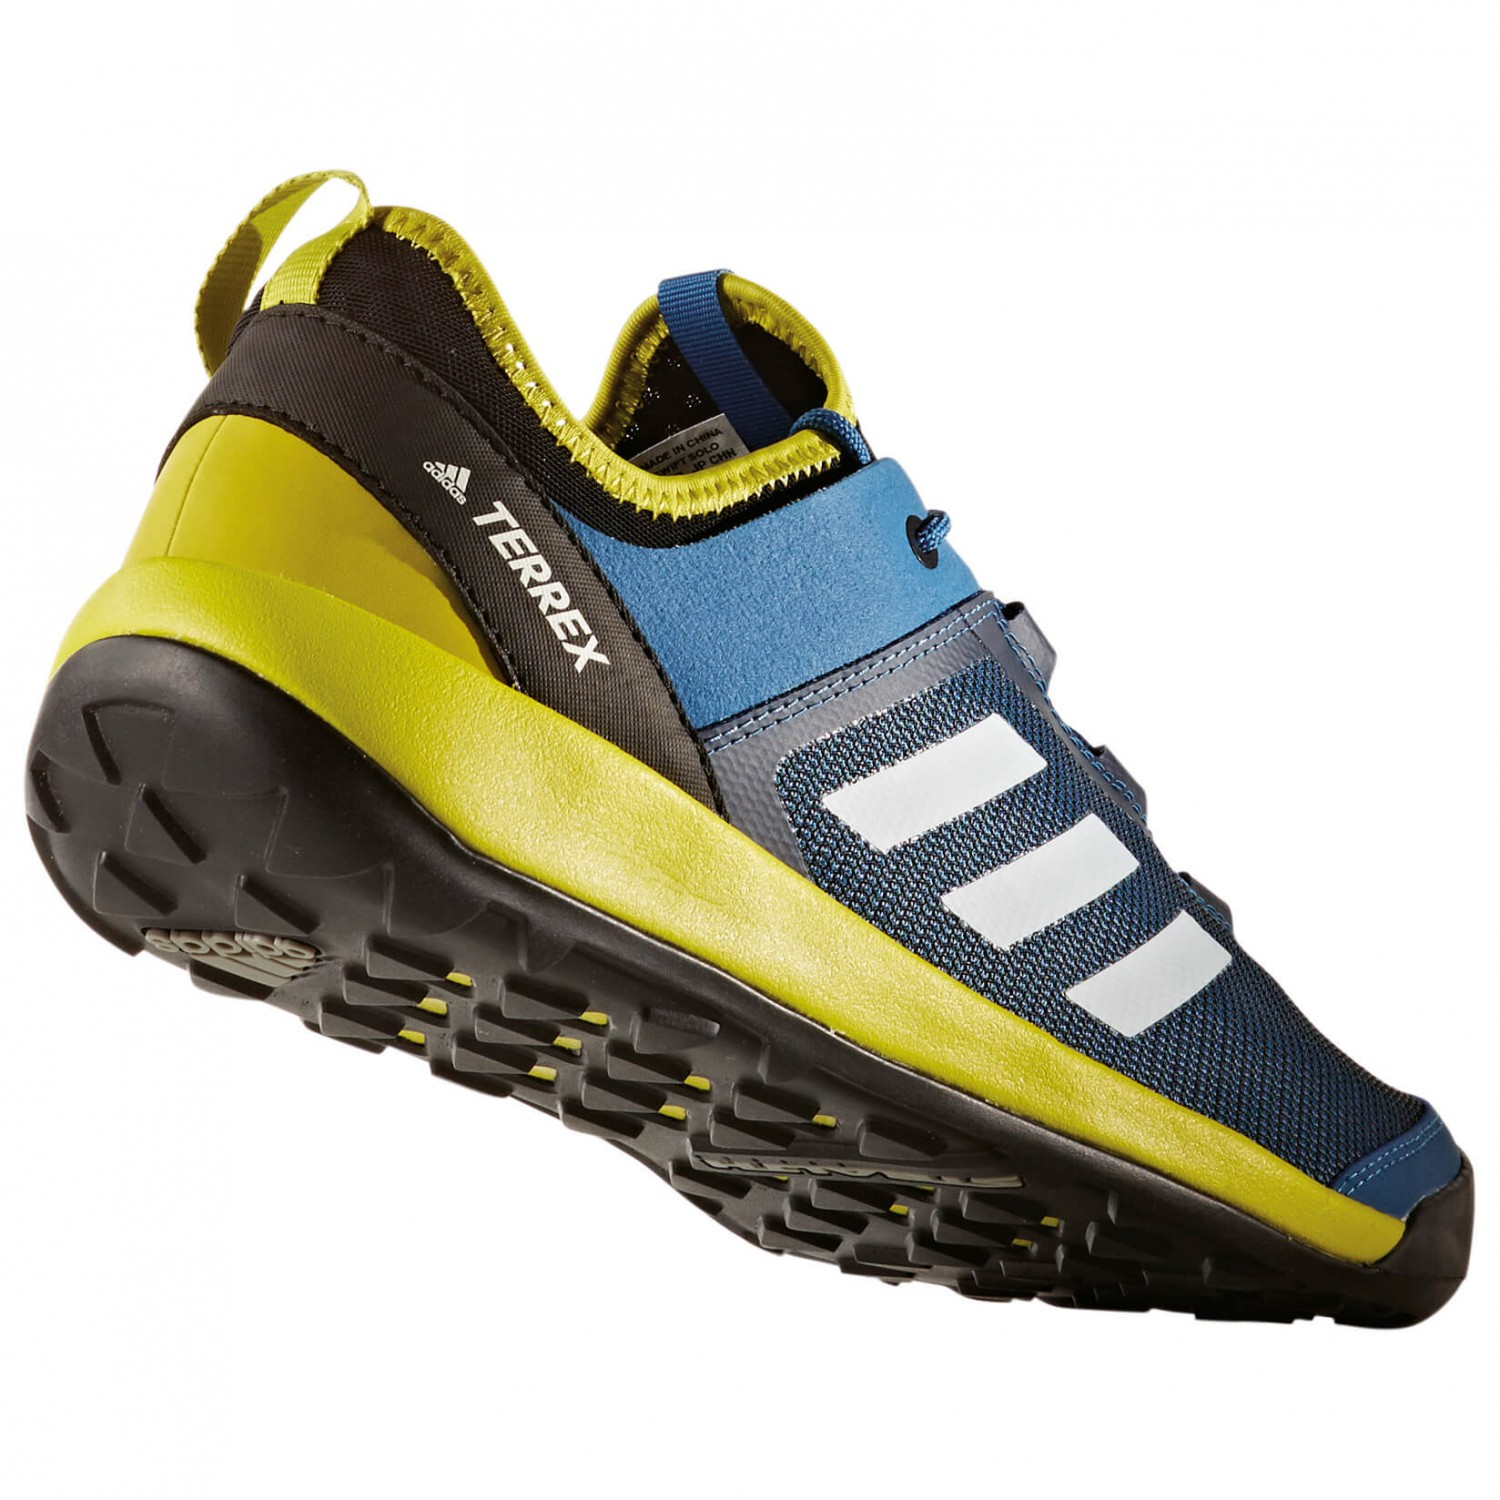 Adidas Approach Shoes Rubber